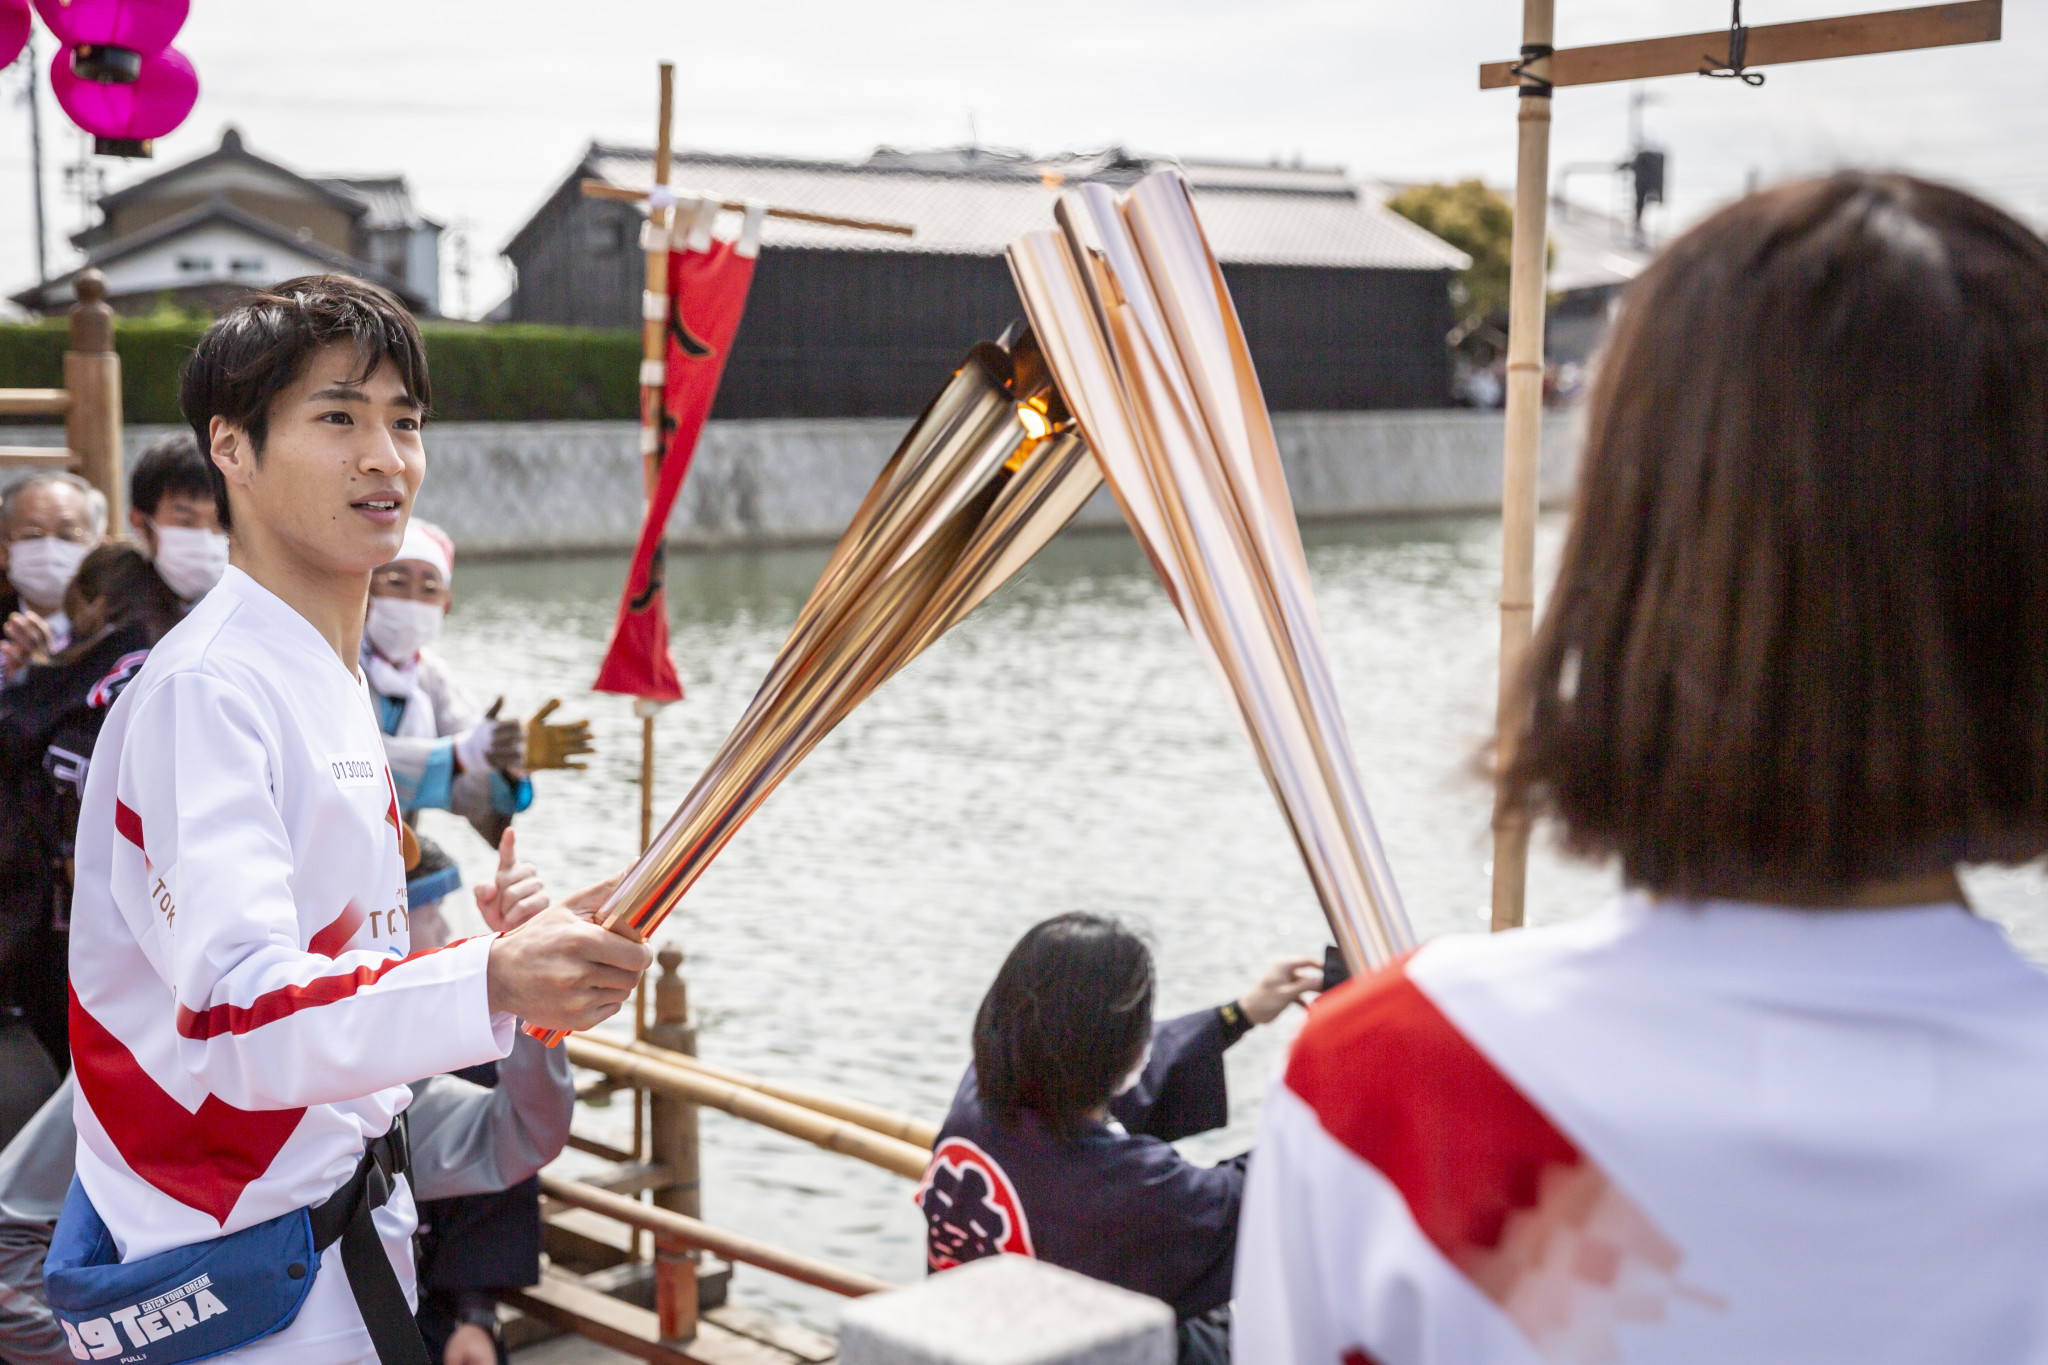 First COVID-19 case linked to Torch Relay, Tokyo 2020 organisers confirm